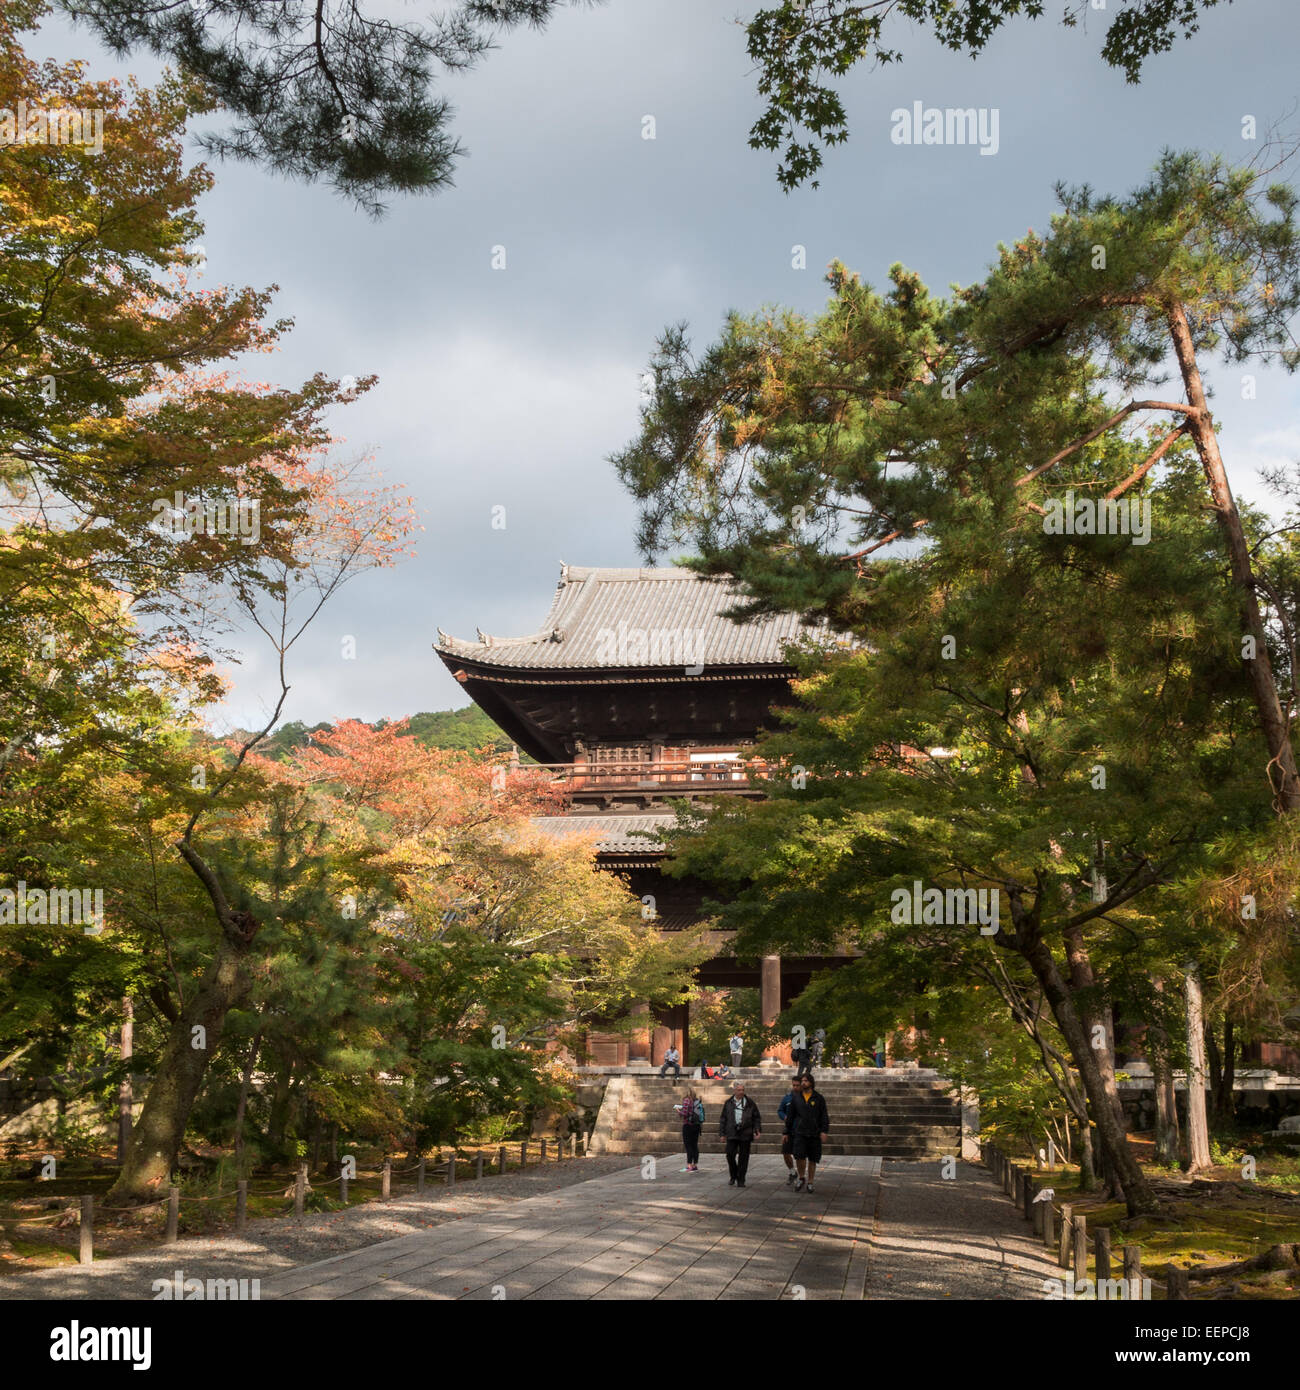 Entrance to the Nanzen-ji temple fround with San-mon Zen gate behind the trees - Stock Image